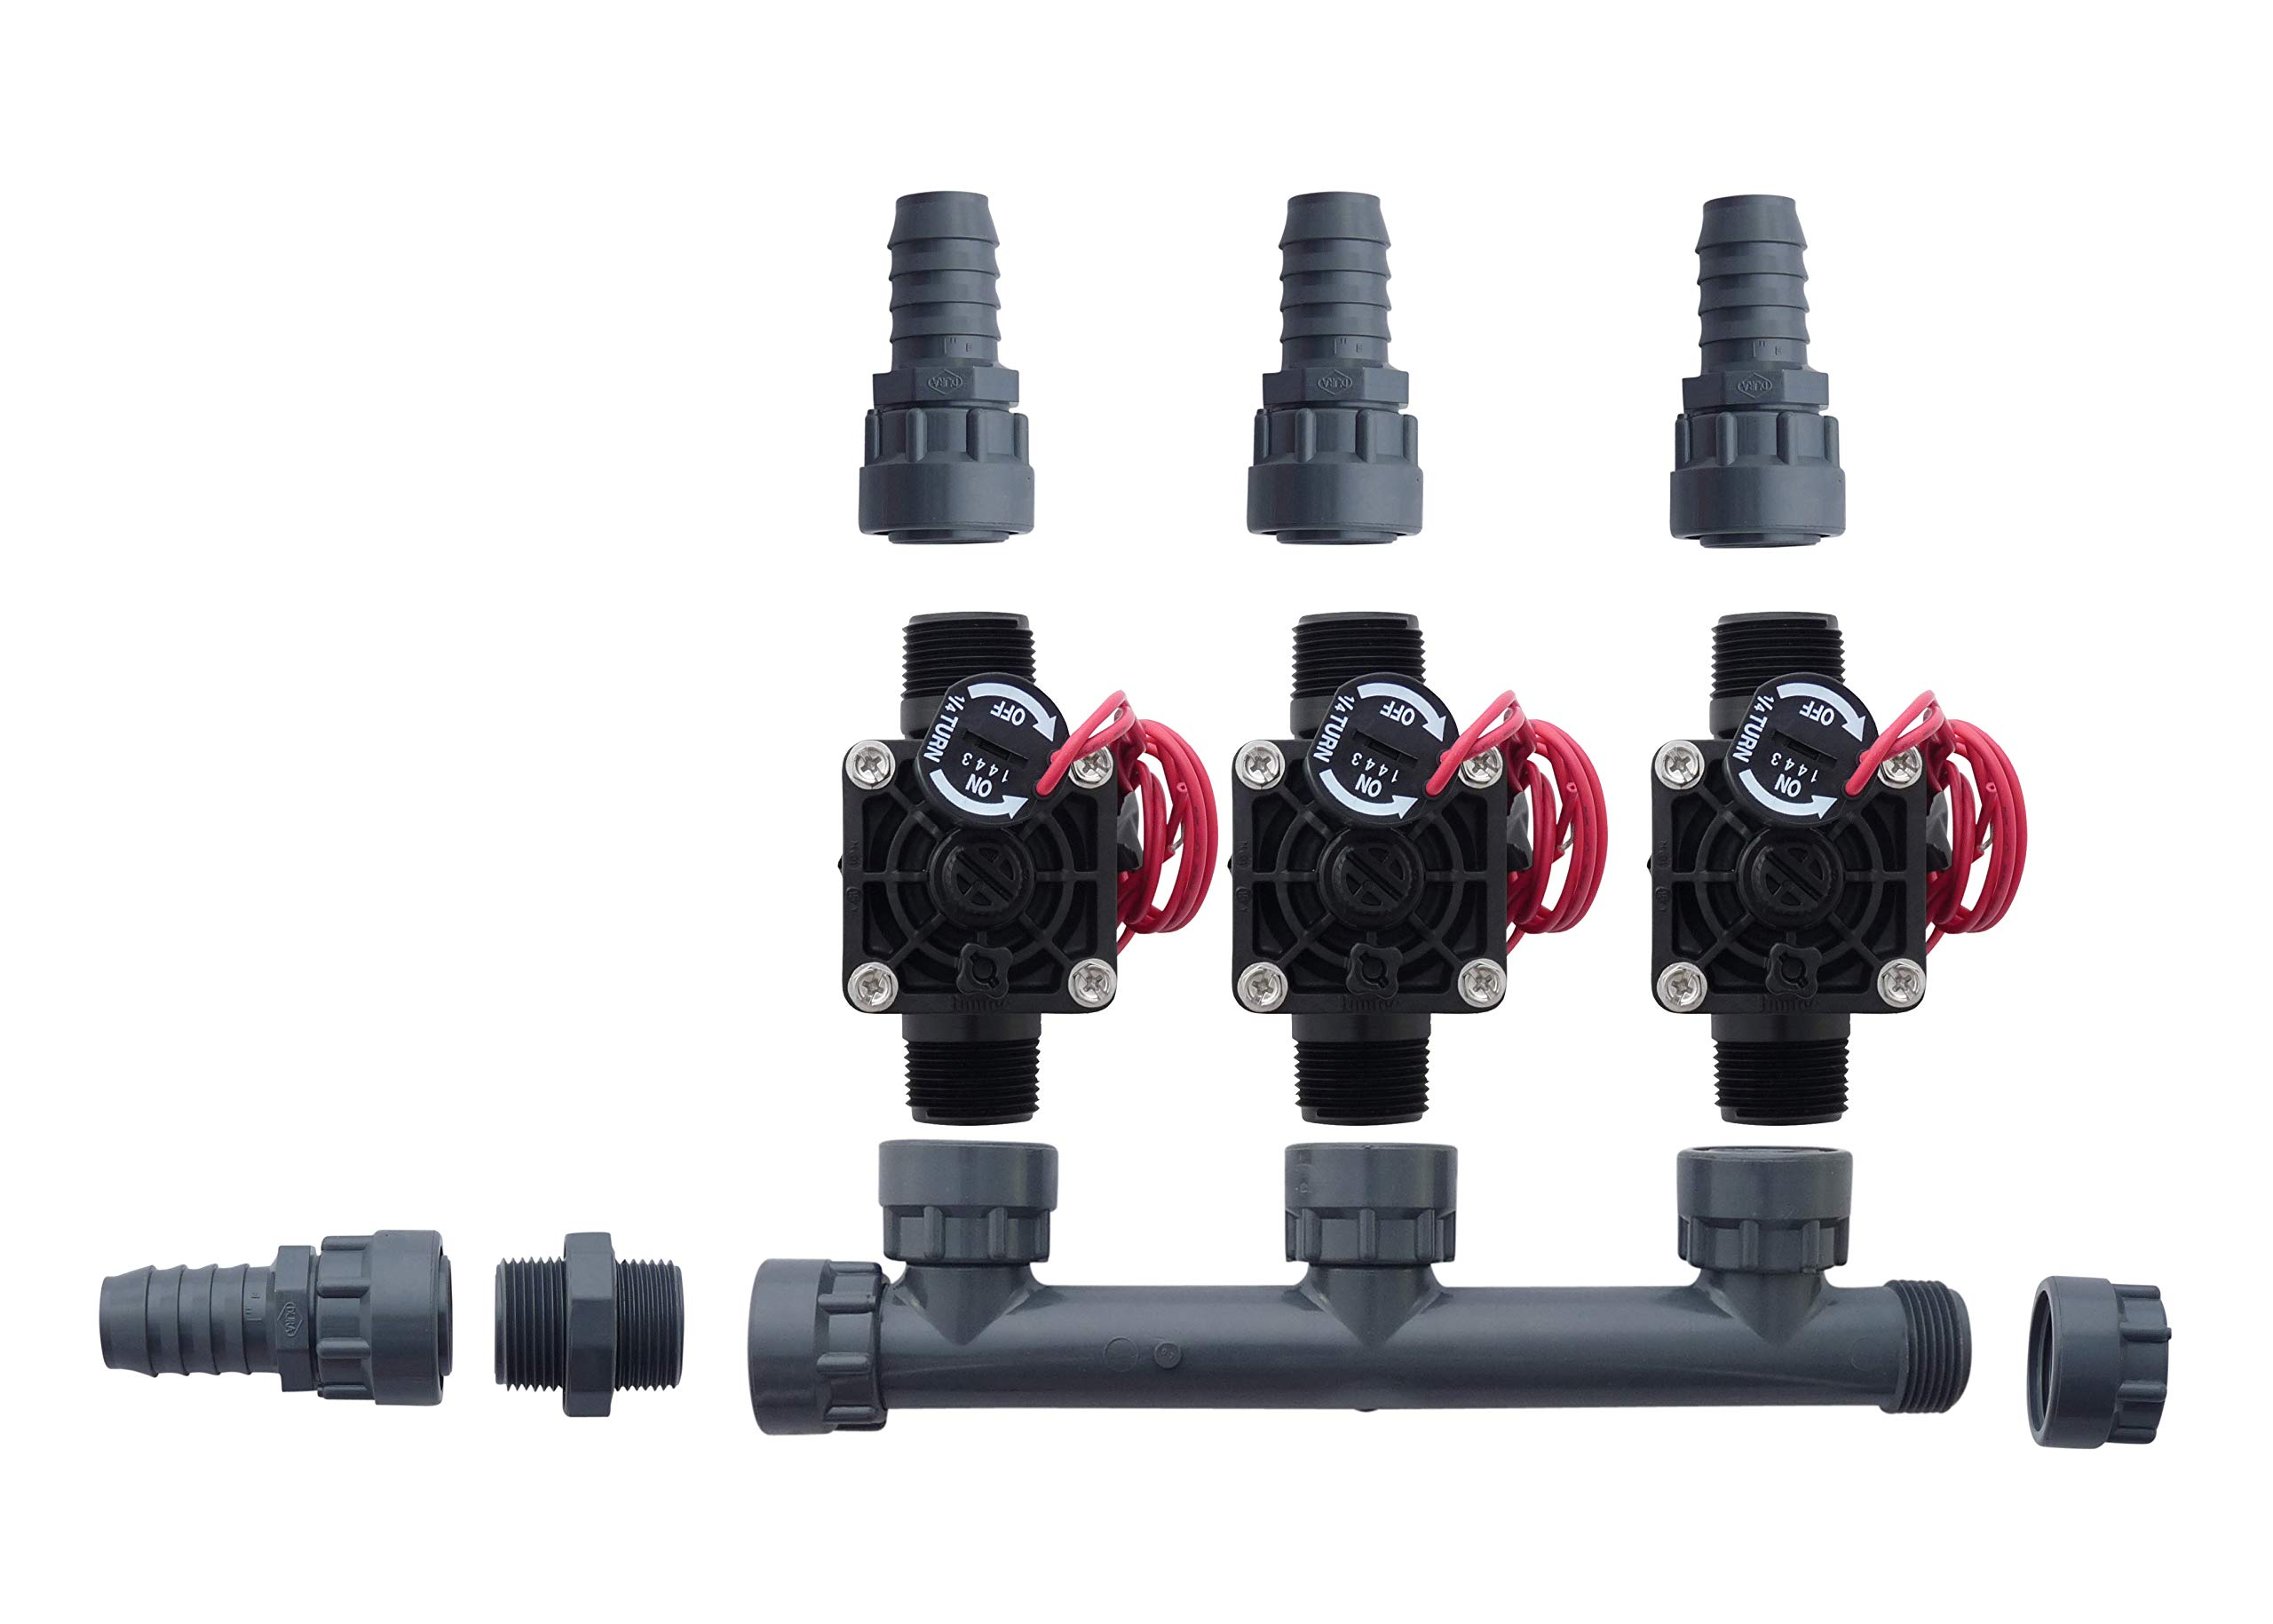 Hunter PGV101-MM 3 Zone Dura Manifold Valve Kit with Flow Control - Barb PGV101MM (3 Zone)